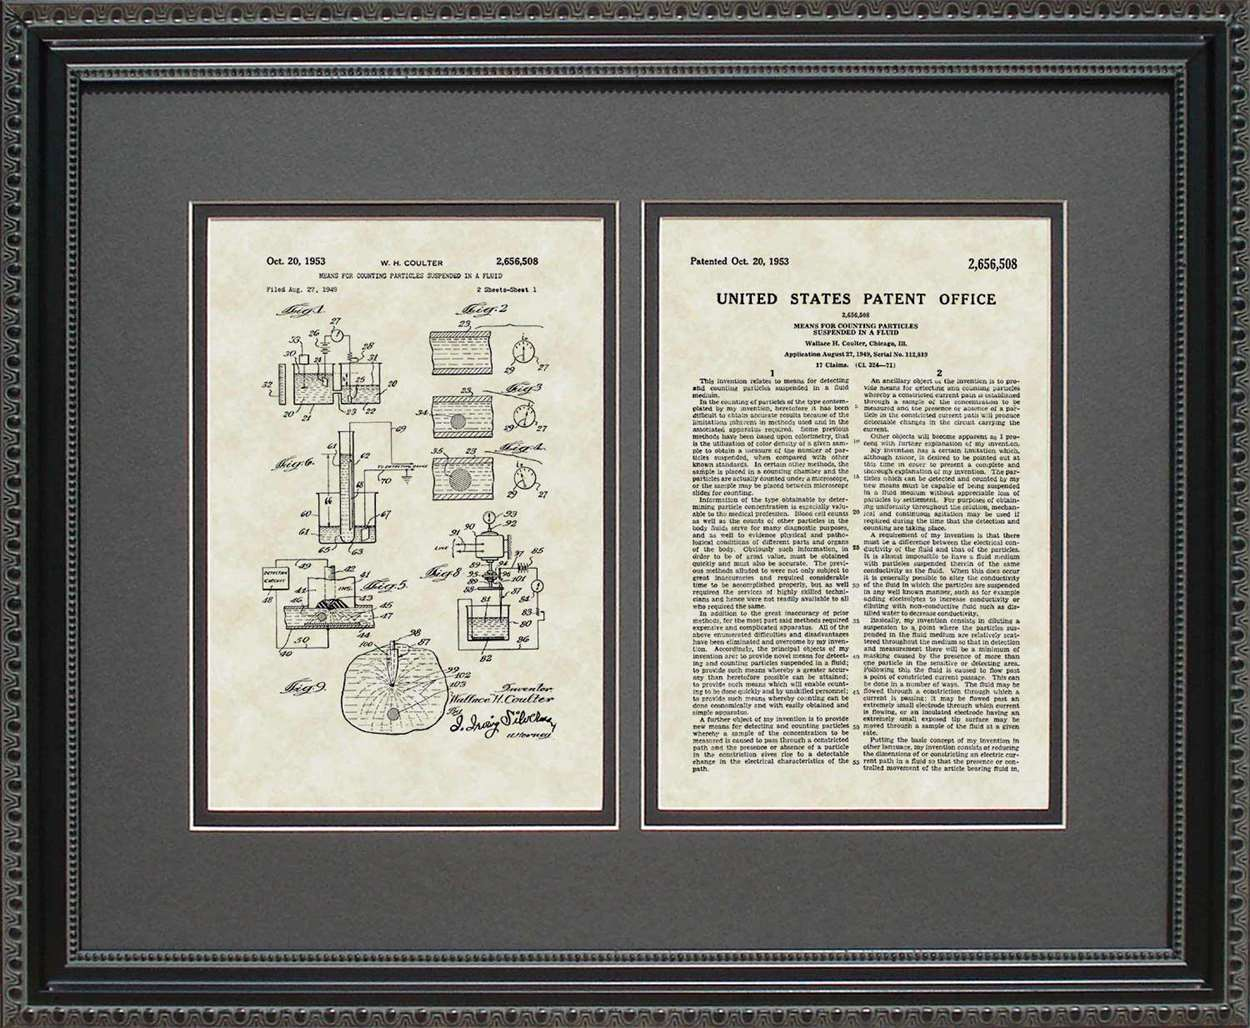 Coulter Principle Patent, Art & Copy, Coulter, 1953, 16x20